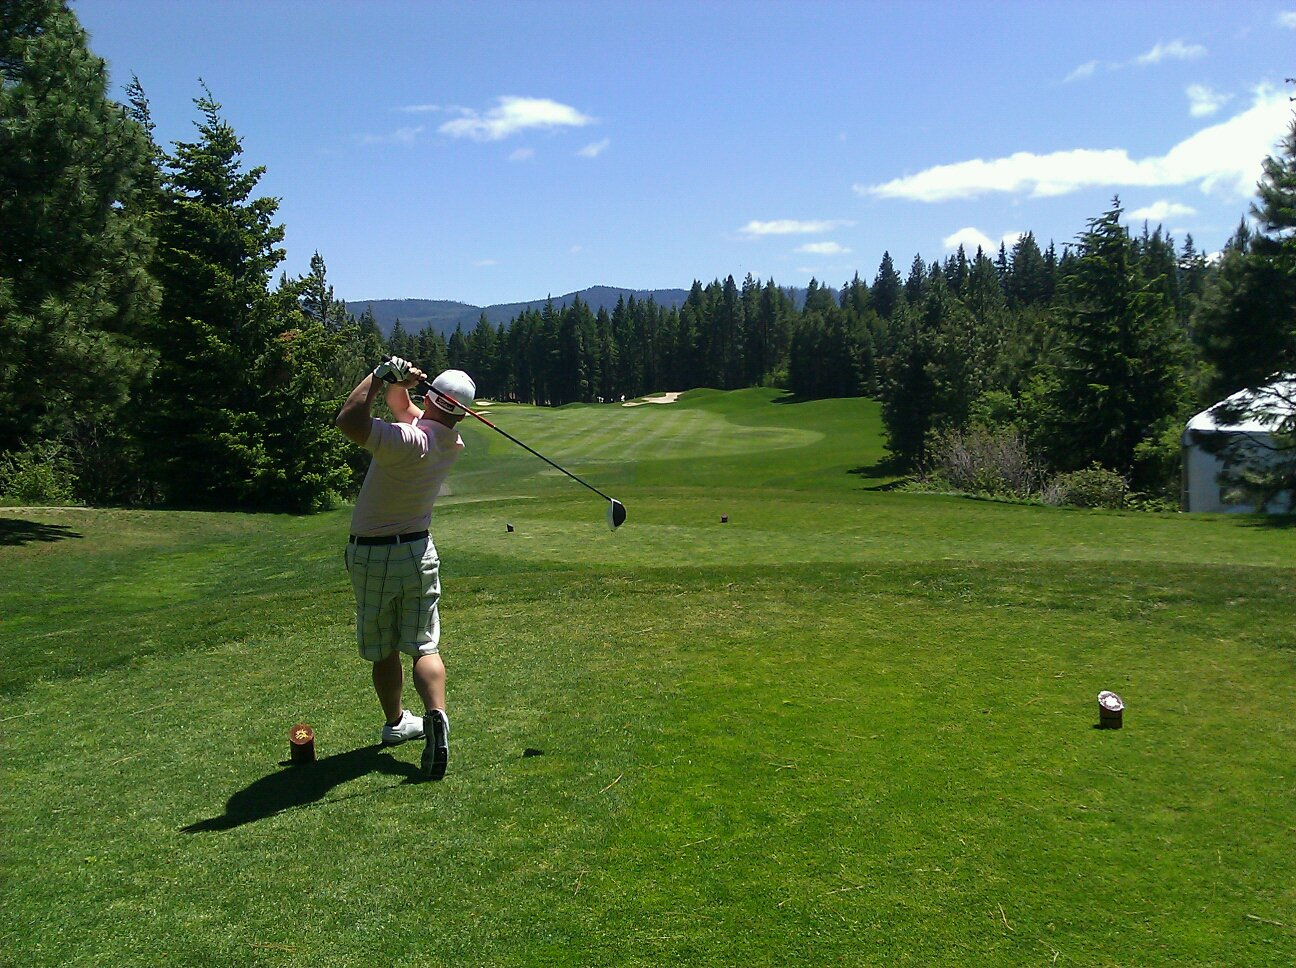 Looking for Golfer's Paradise